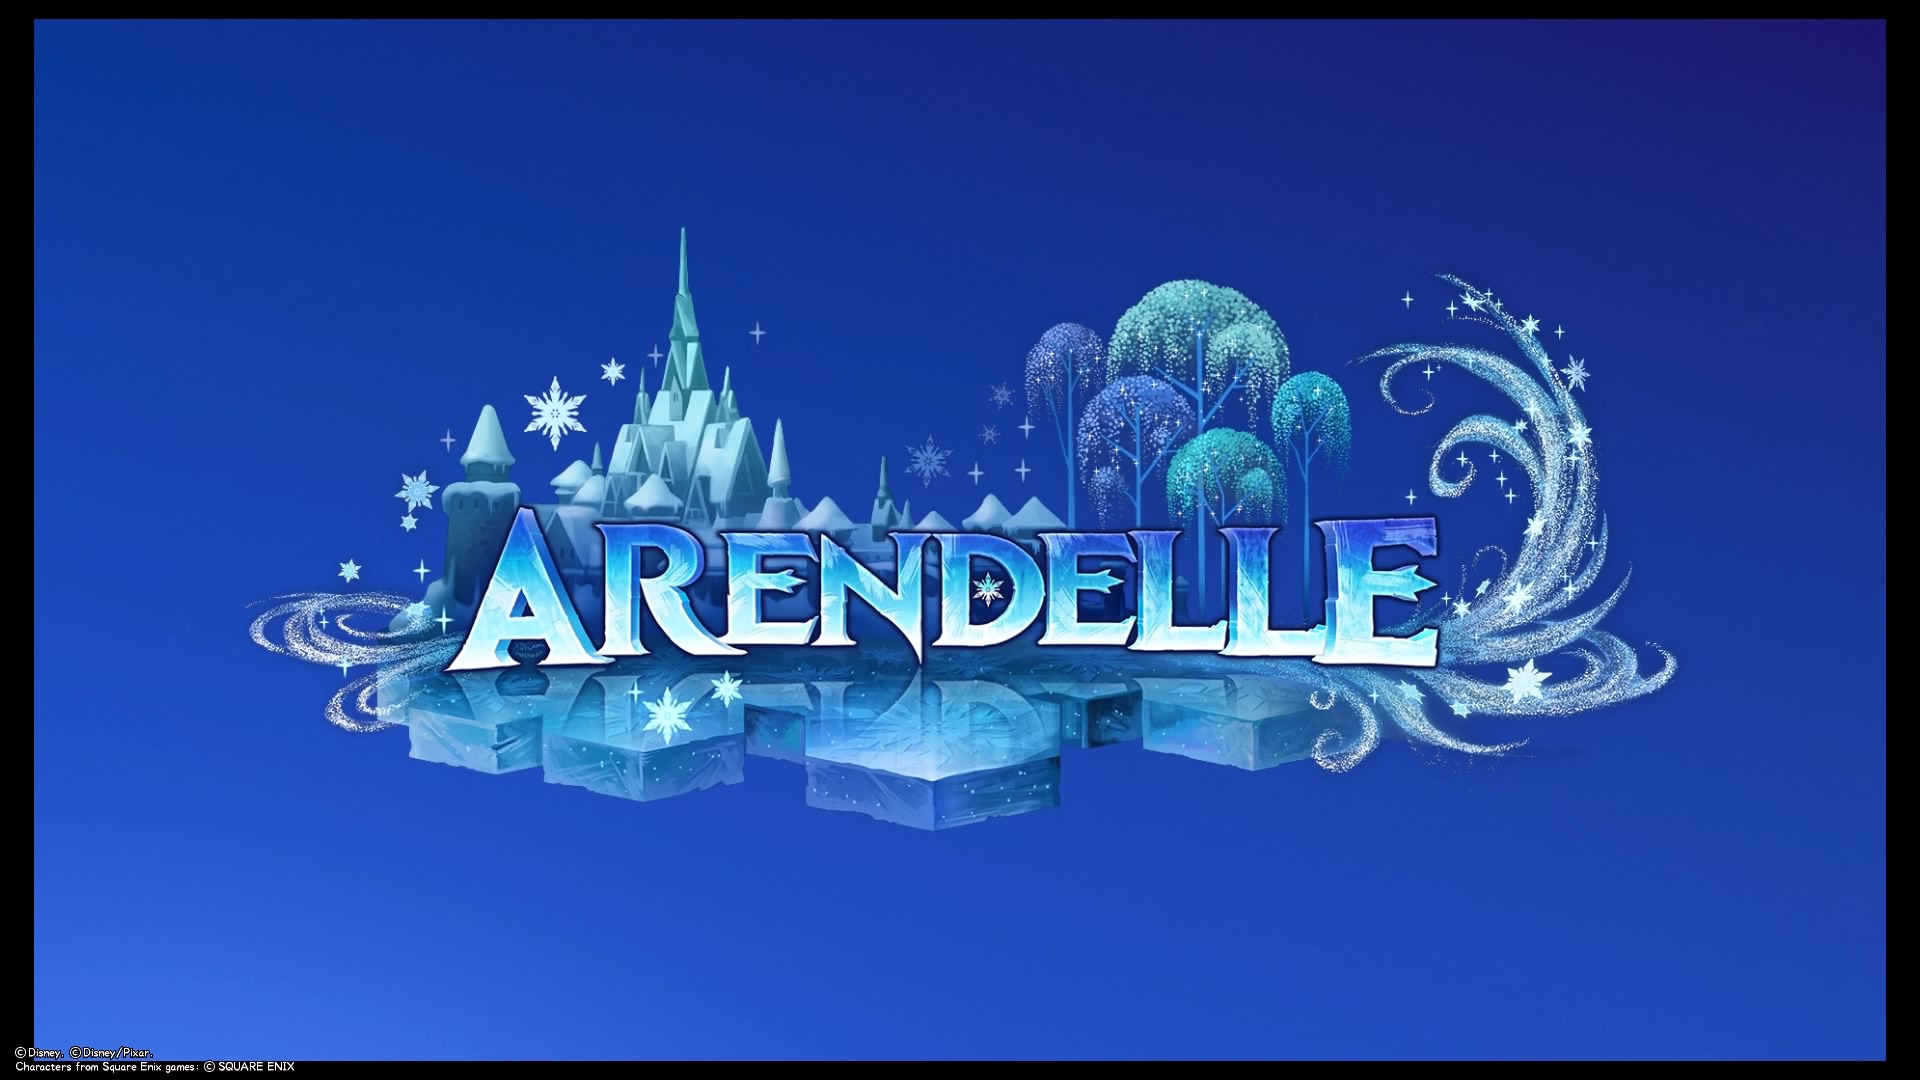 Kingdom Hearts 3 Arendelle Walkthrough And Guide